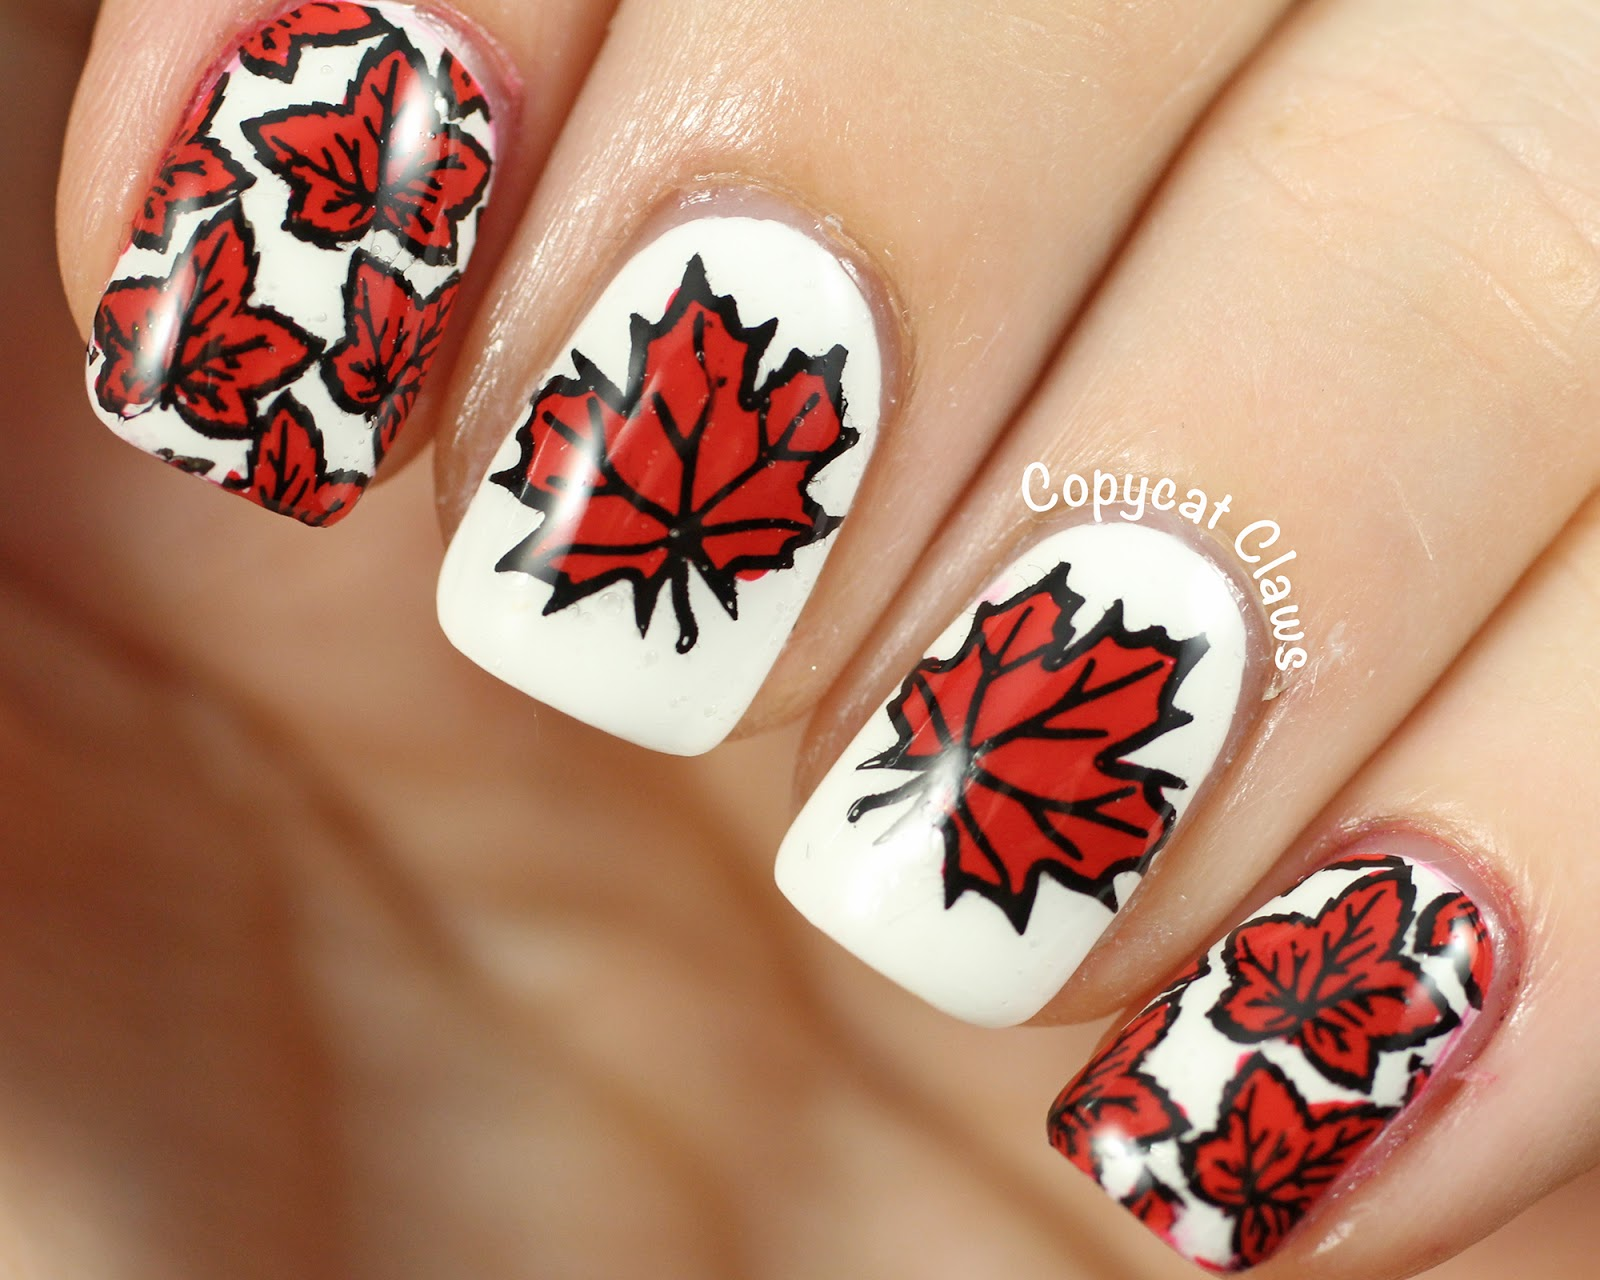 Copycat Claws: Sunday Stamping - Canada Day Nails